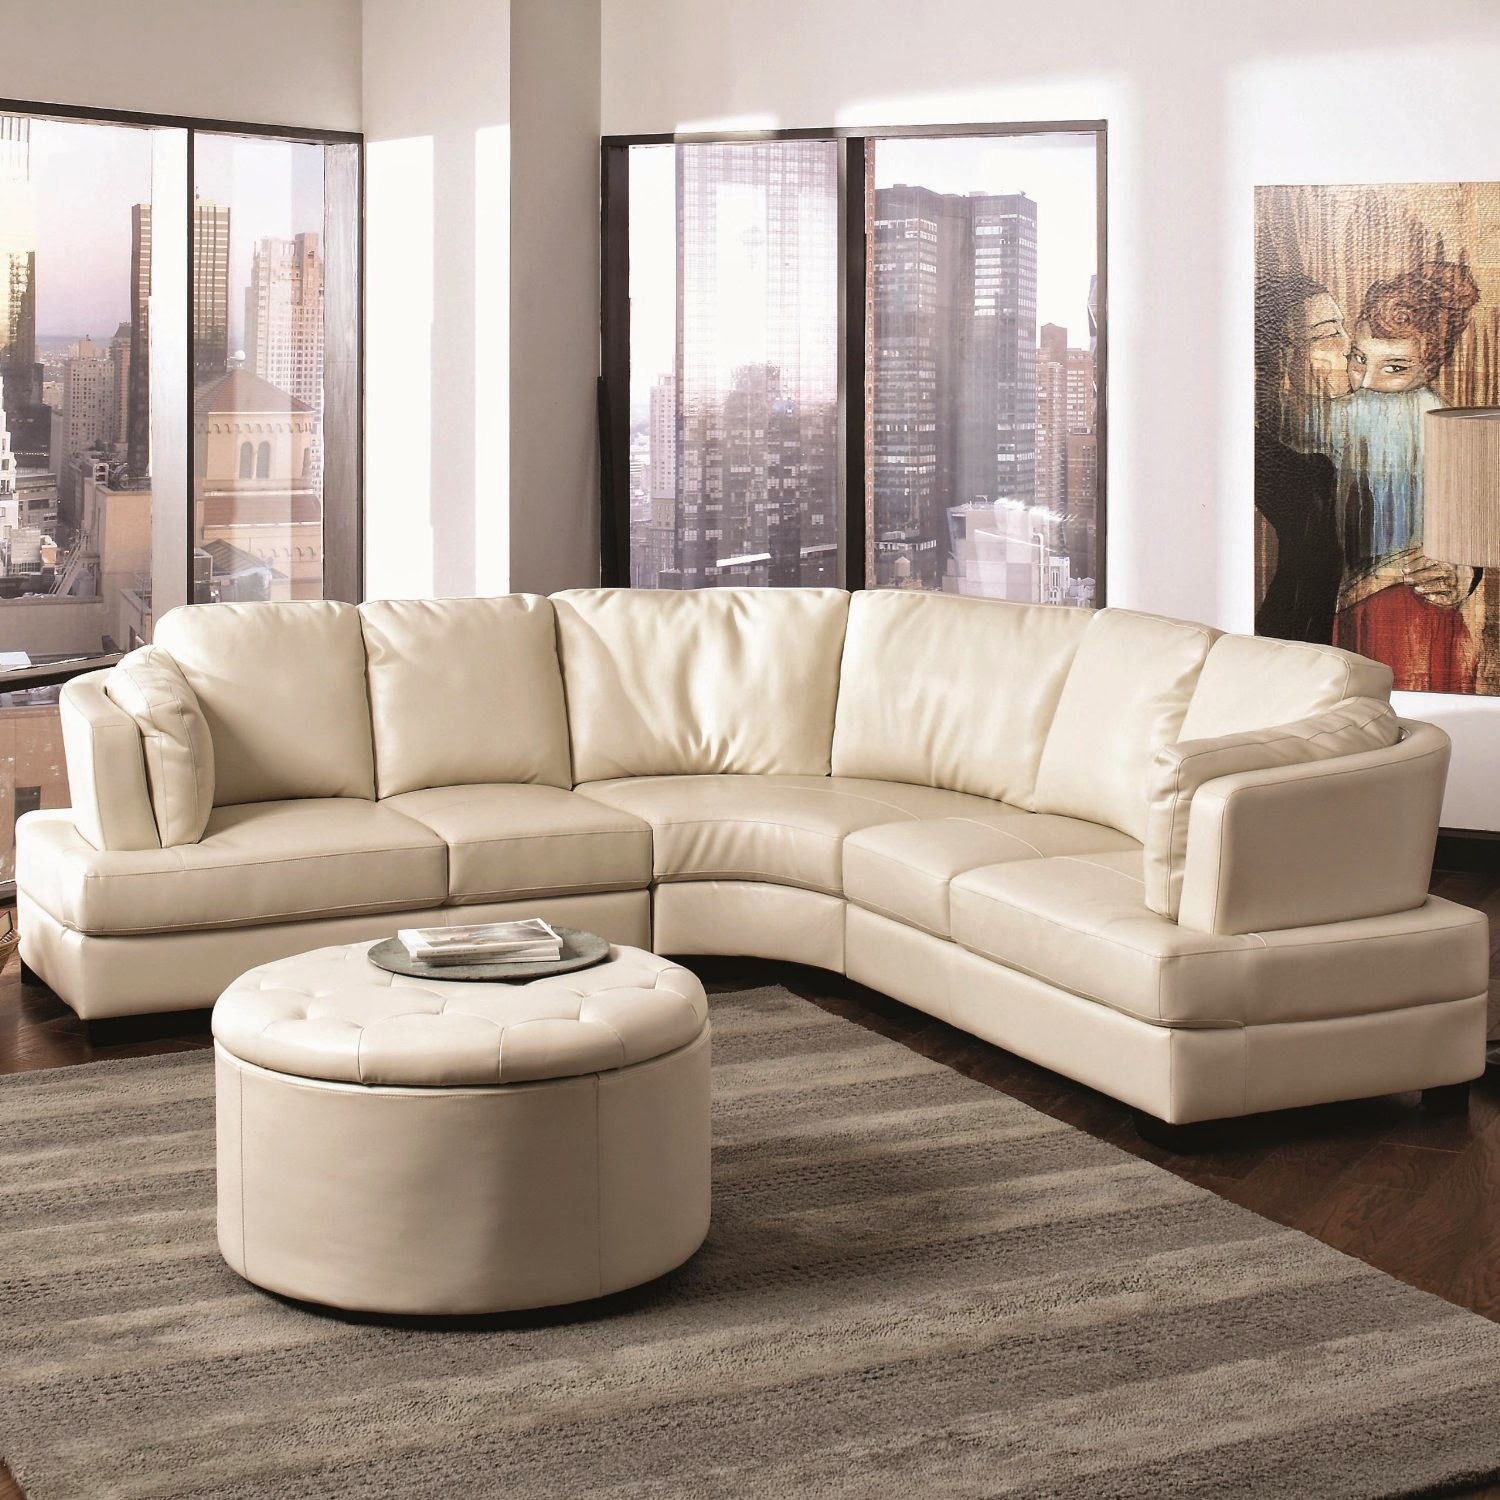 Curved Sofa Couch Furniture Curved Sofa Couch For Sale